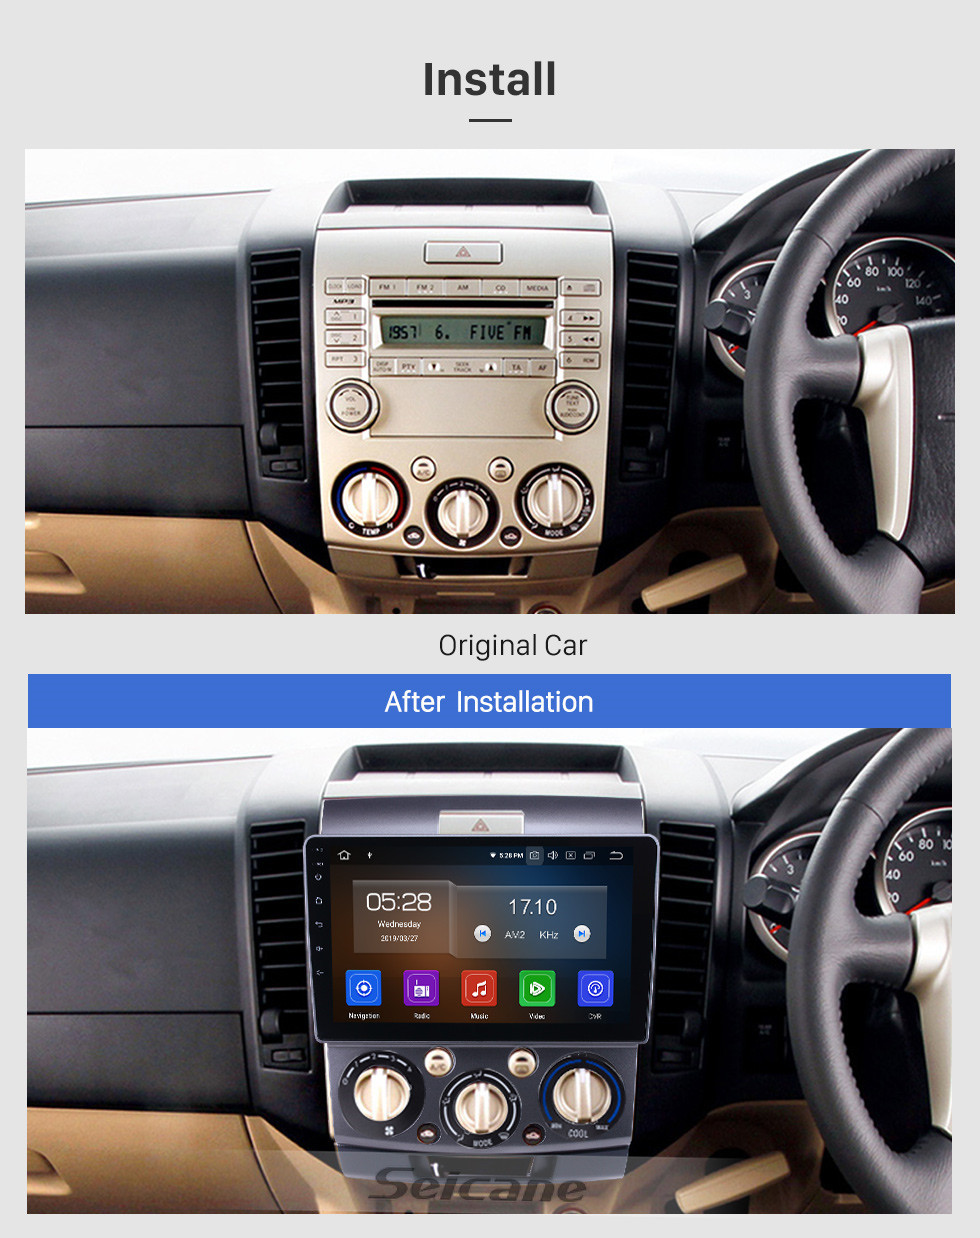 Seicane 2006-2010 Ford Everest/Ranger Mazda BT-50 Android 10.0 9 inch GPS Navigation Radio Bluetooth HD Touchscreen Carplay support Backup camera